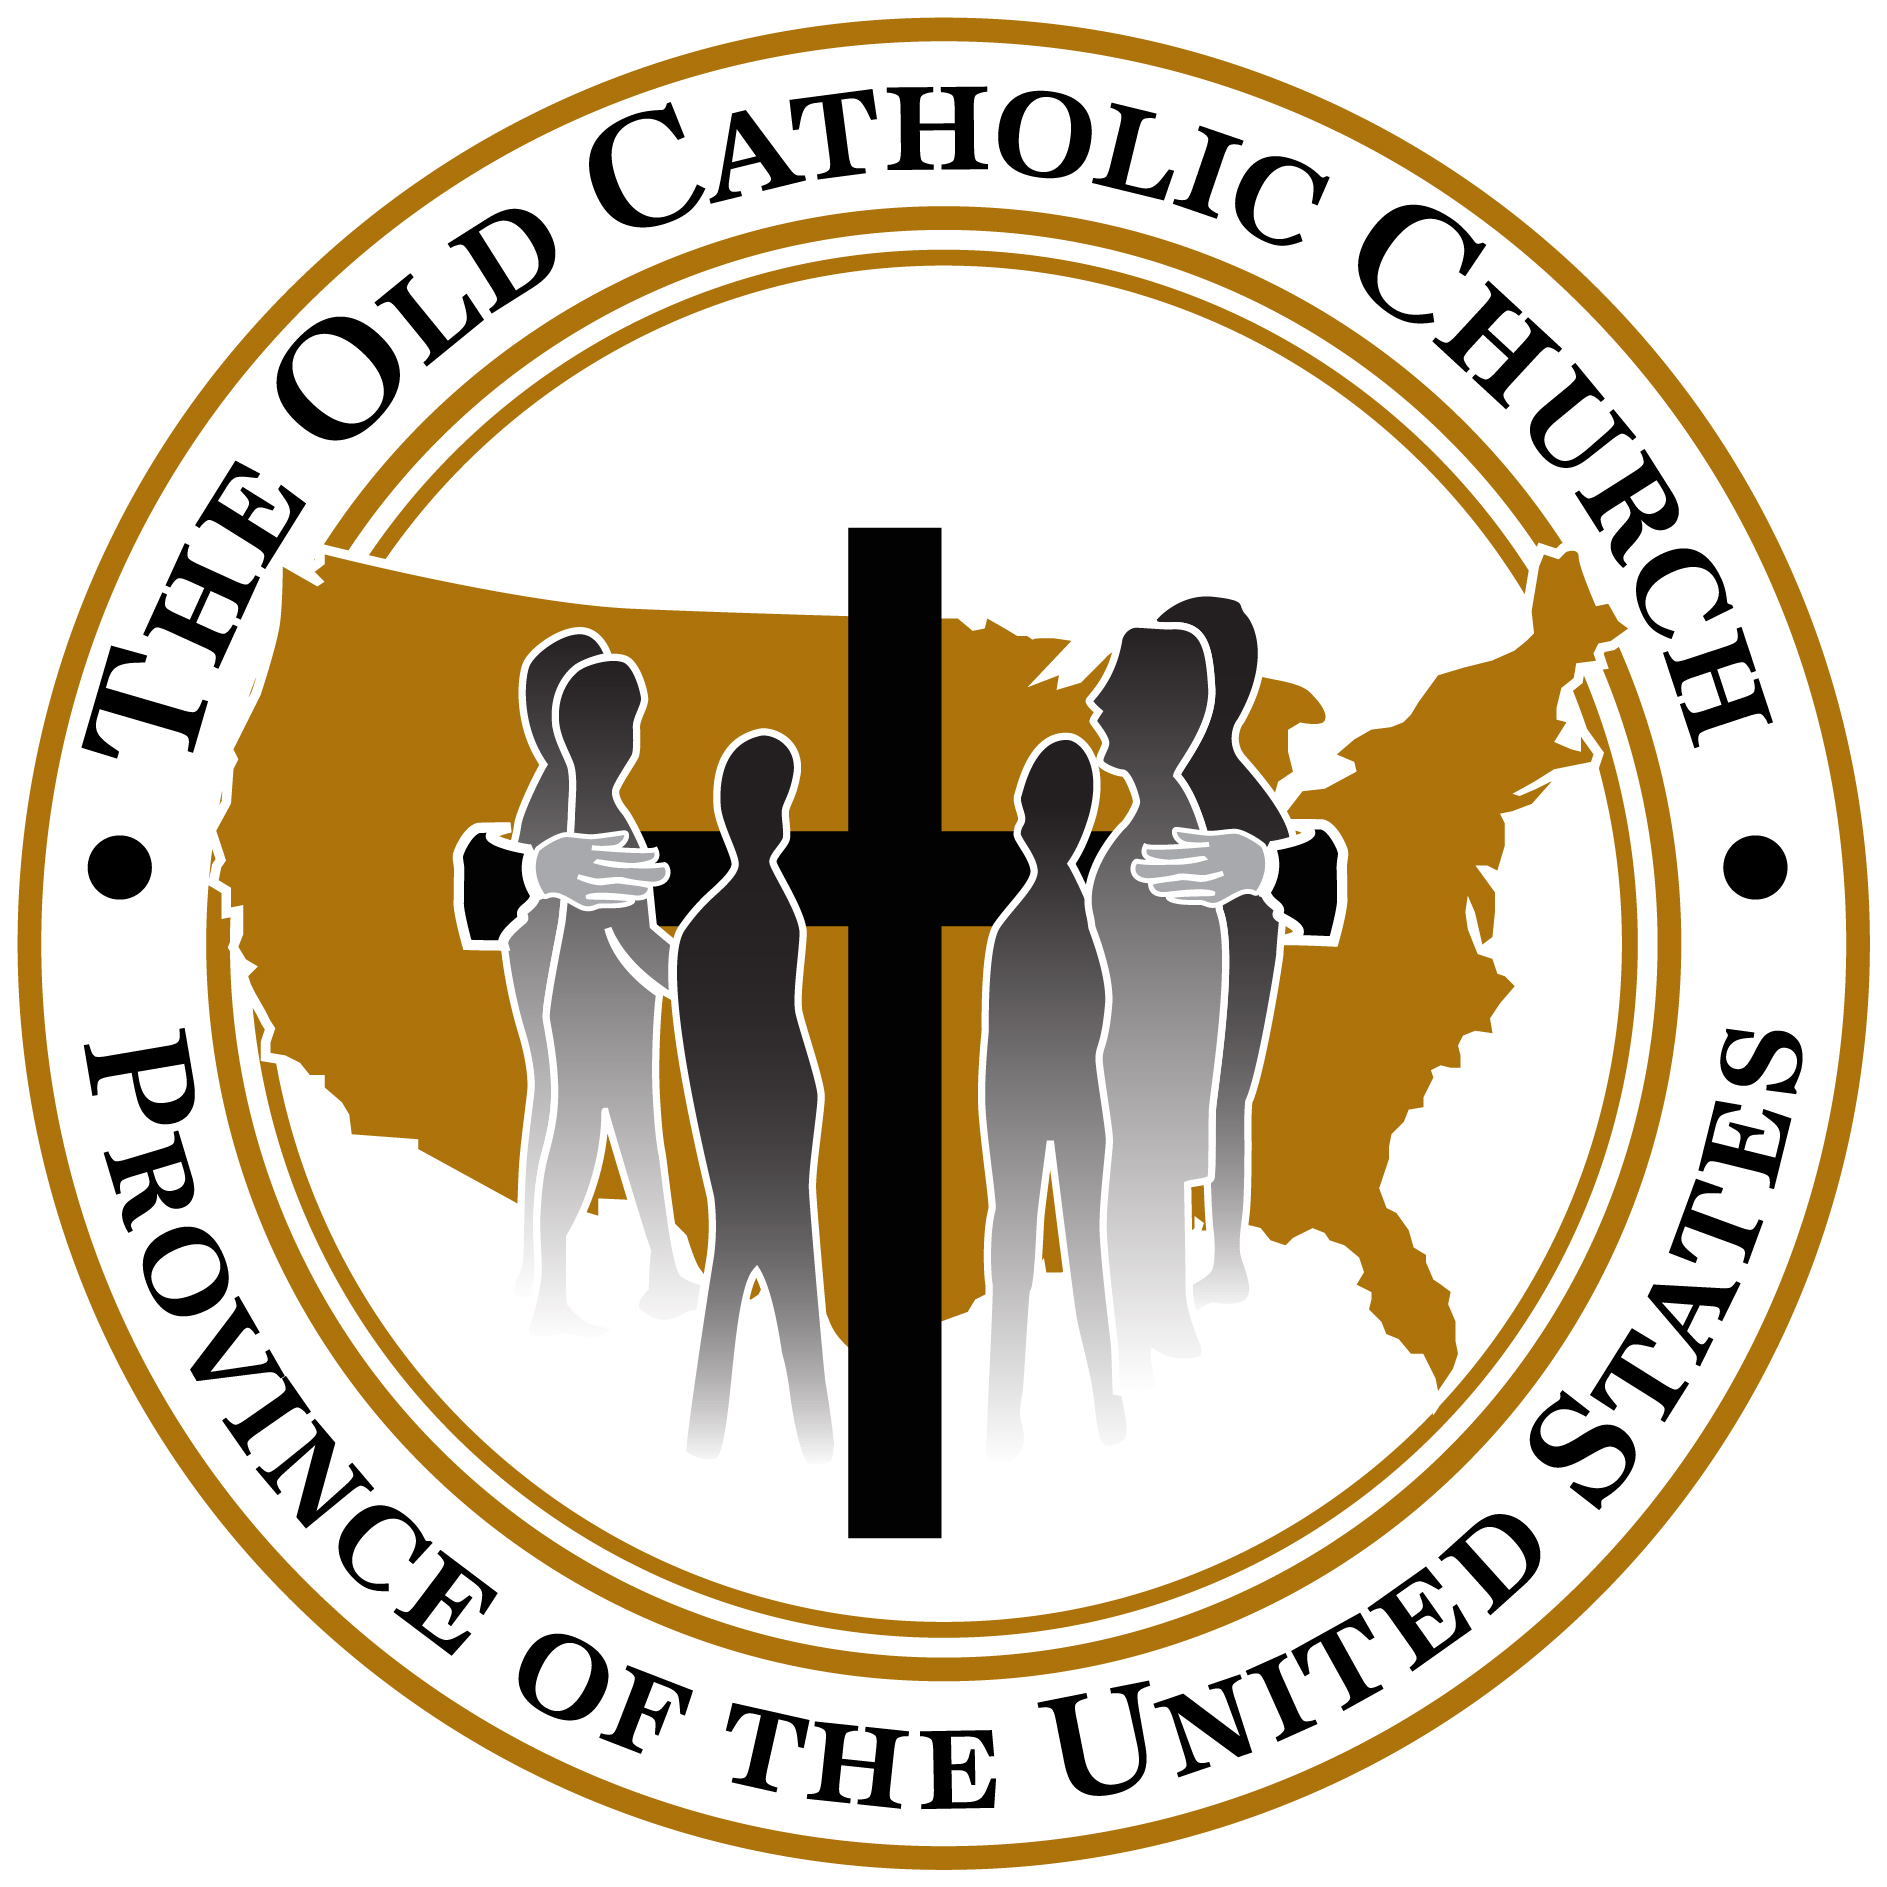 Holy Cross Diocese of Minnesota A member of The Old Catholic Church united States